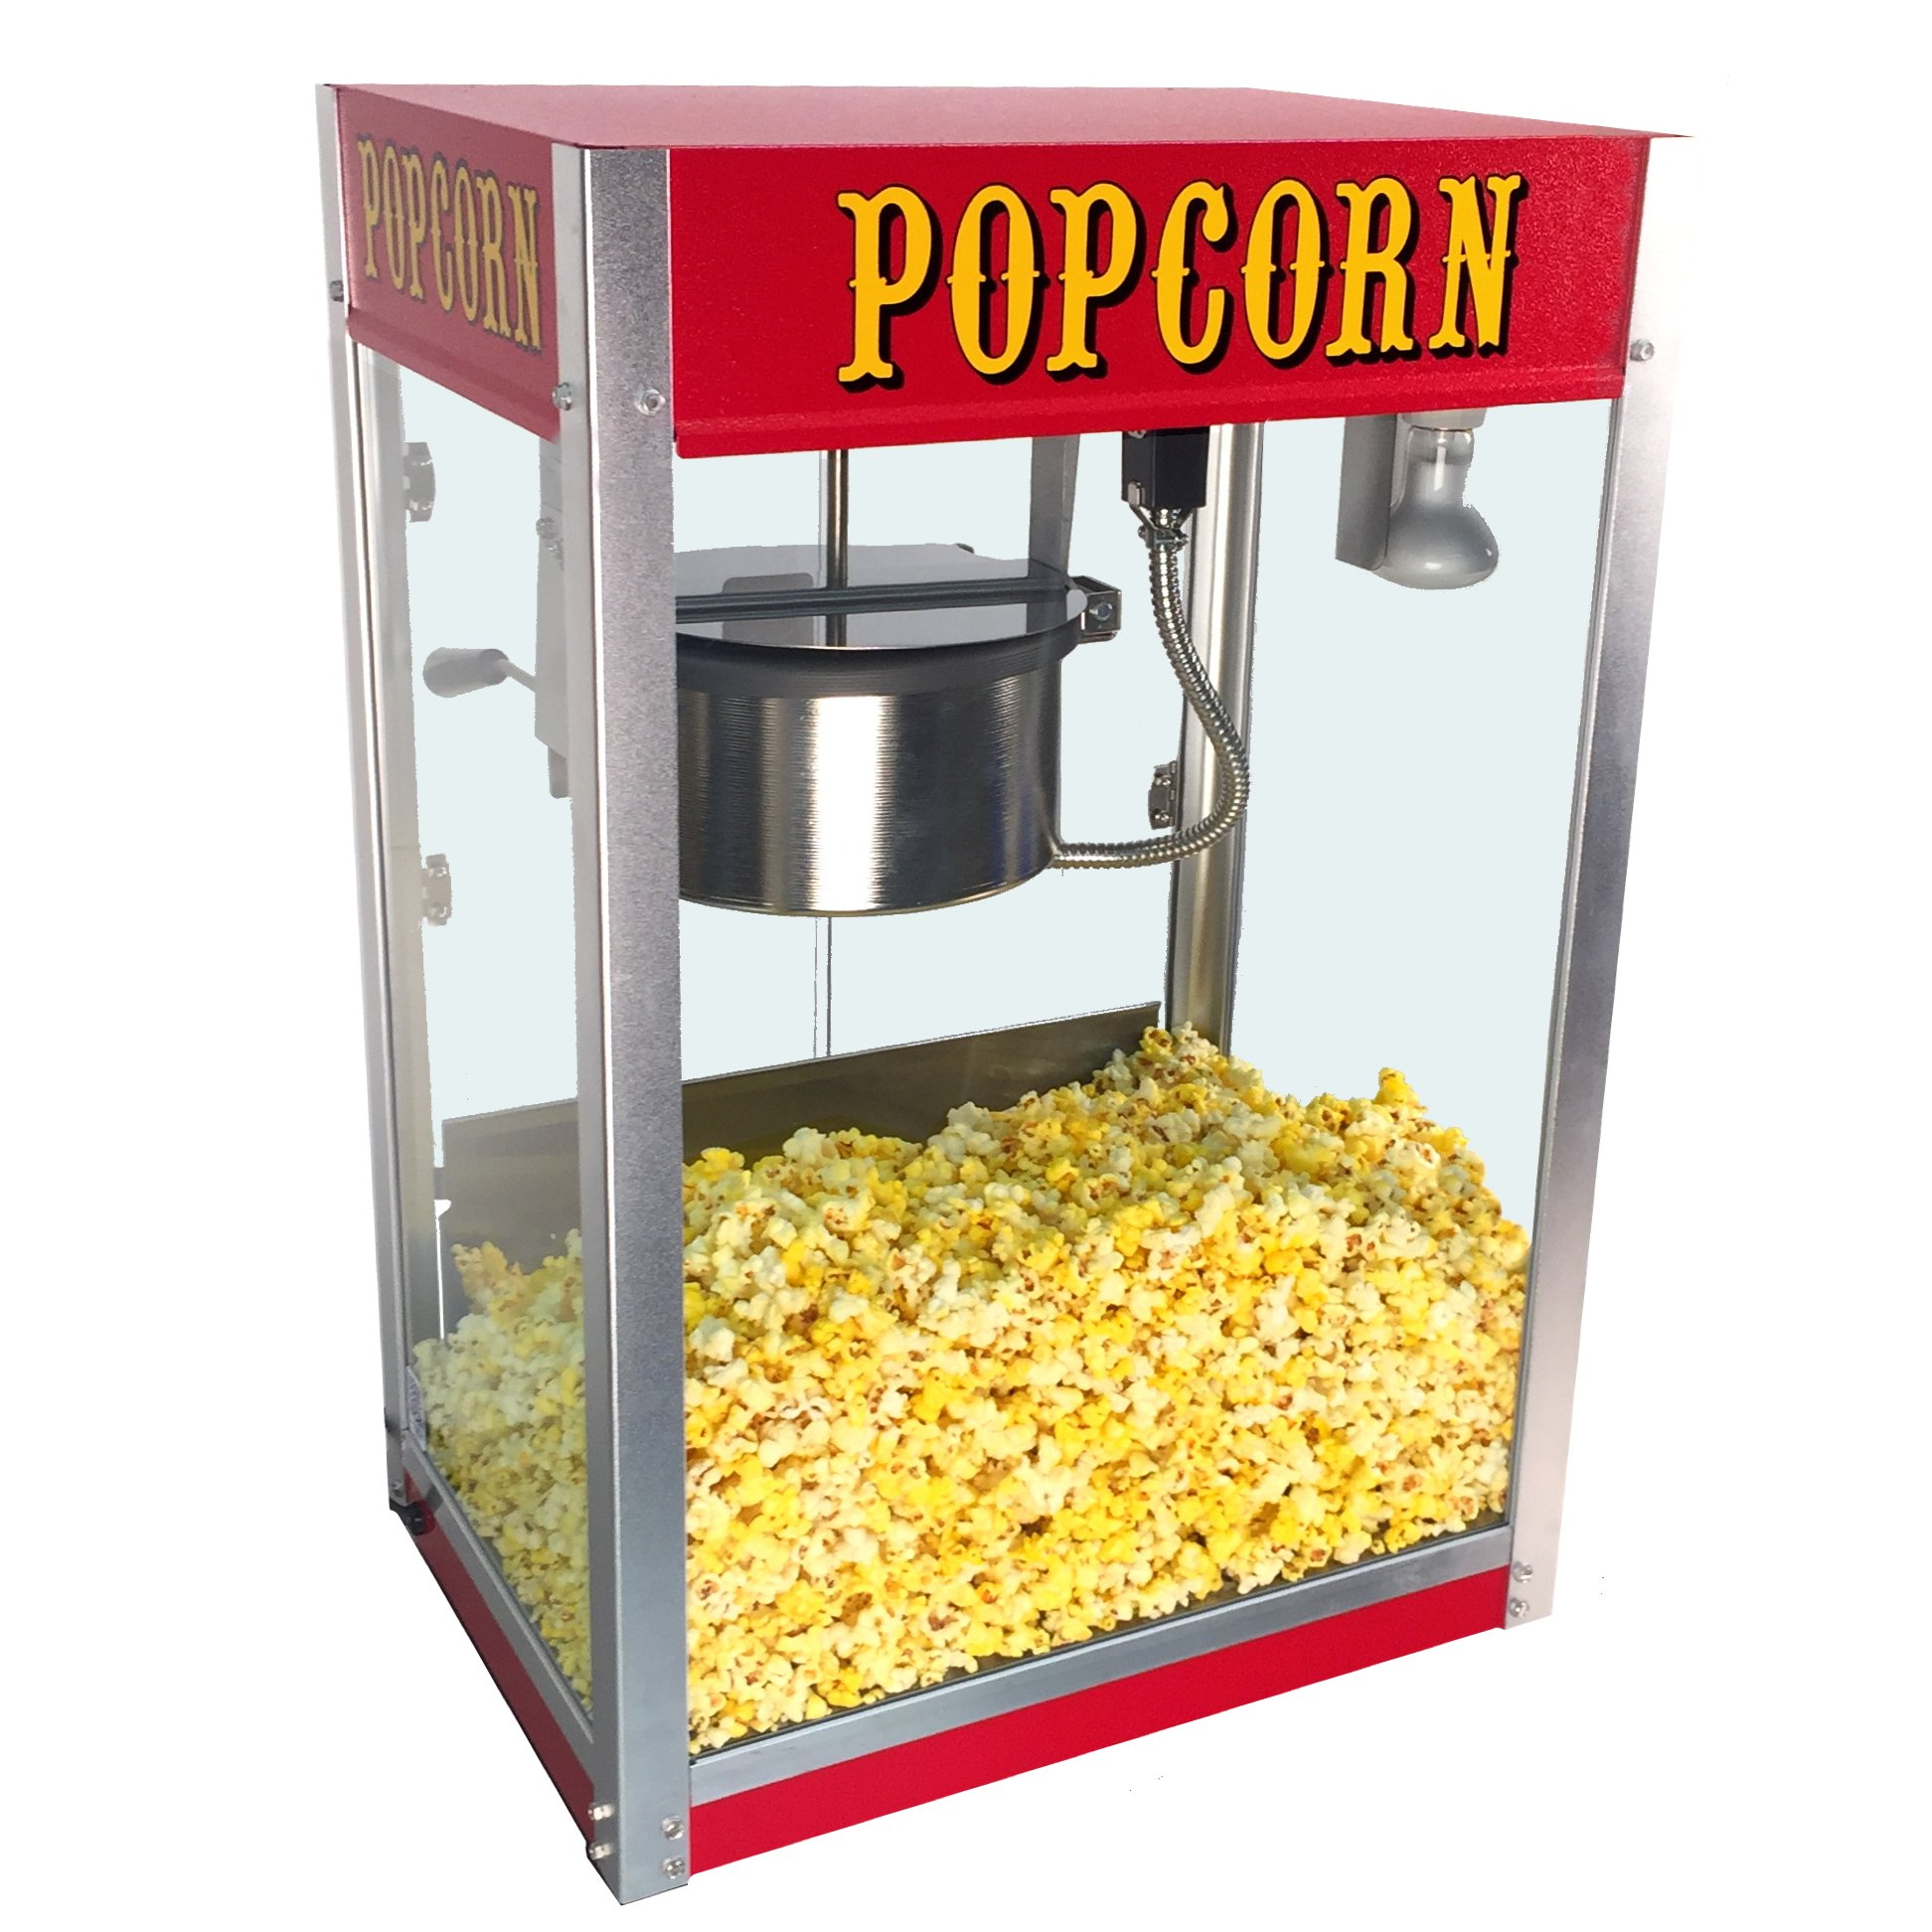 Paragon Theater Pop 8 Ounce Popcorn Machine for Professional Concessionaires Requiring Commercial Quality High Output Popcorn Equipment by Paragon - Manufactured Fun